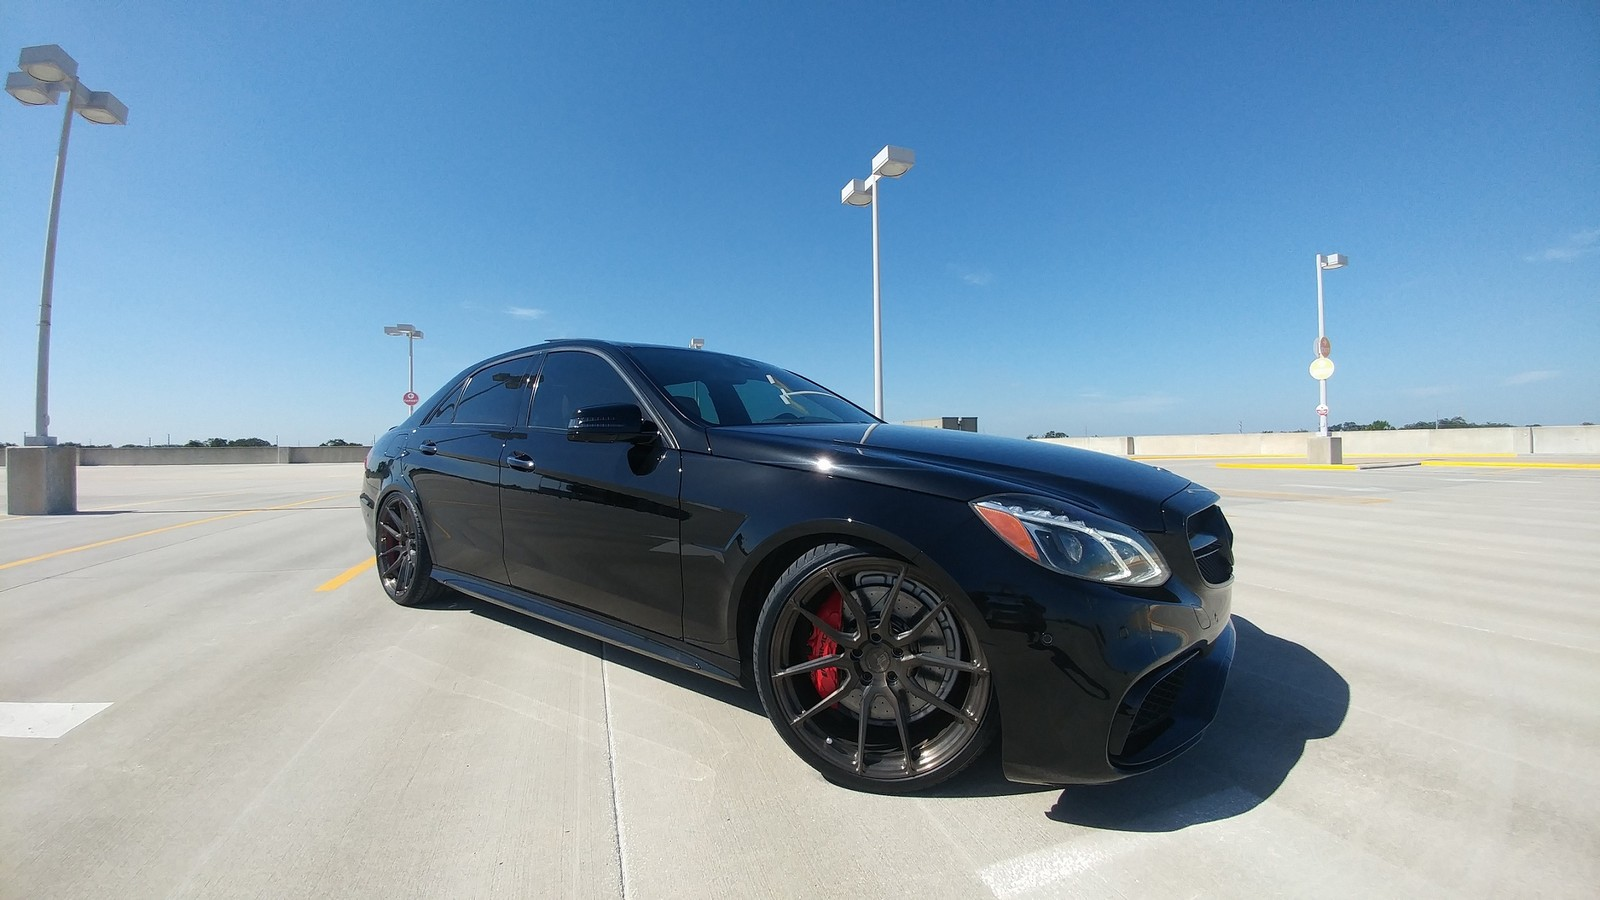 2014 Mercedes Benz E63 Amg S 1 4 Mile Drag Racing Timeslip Specs 0